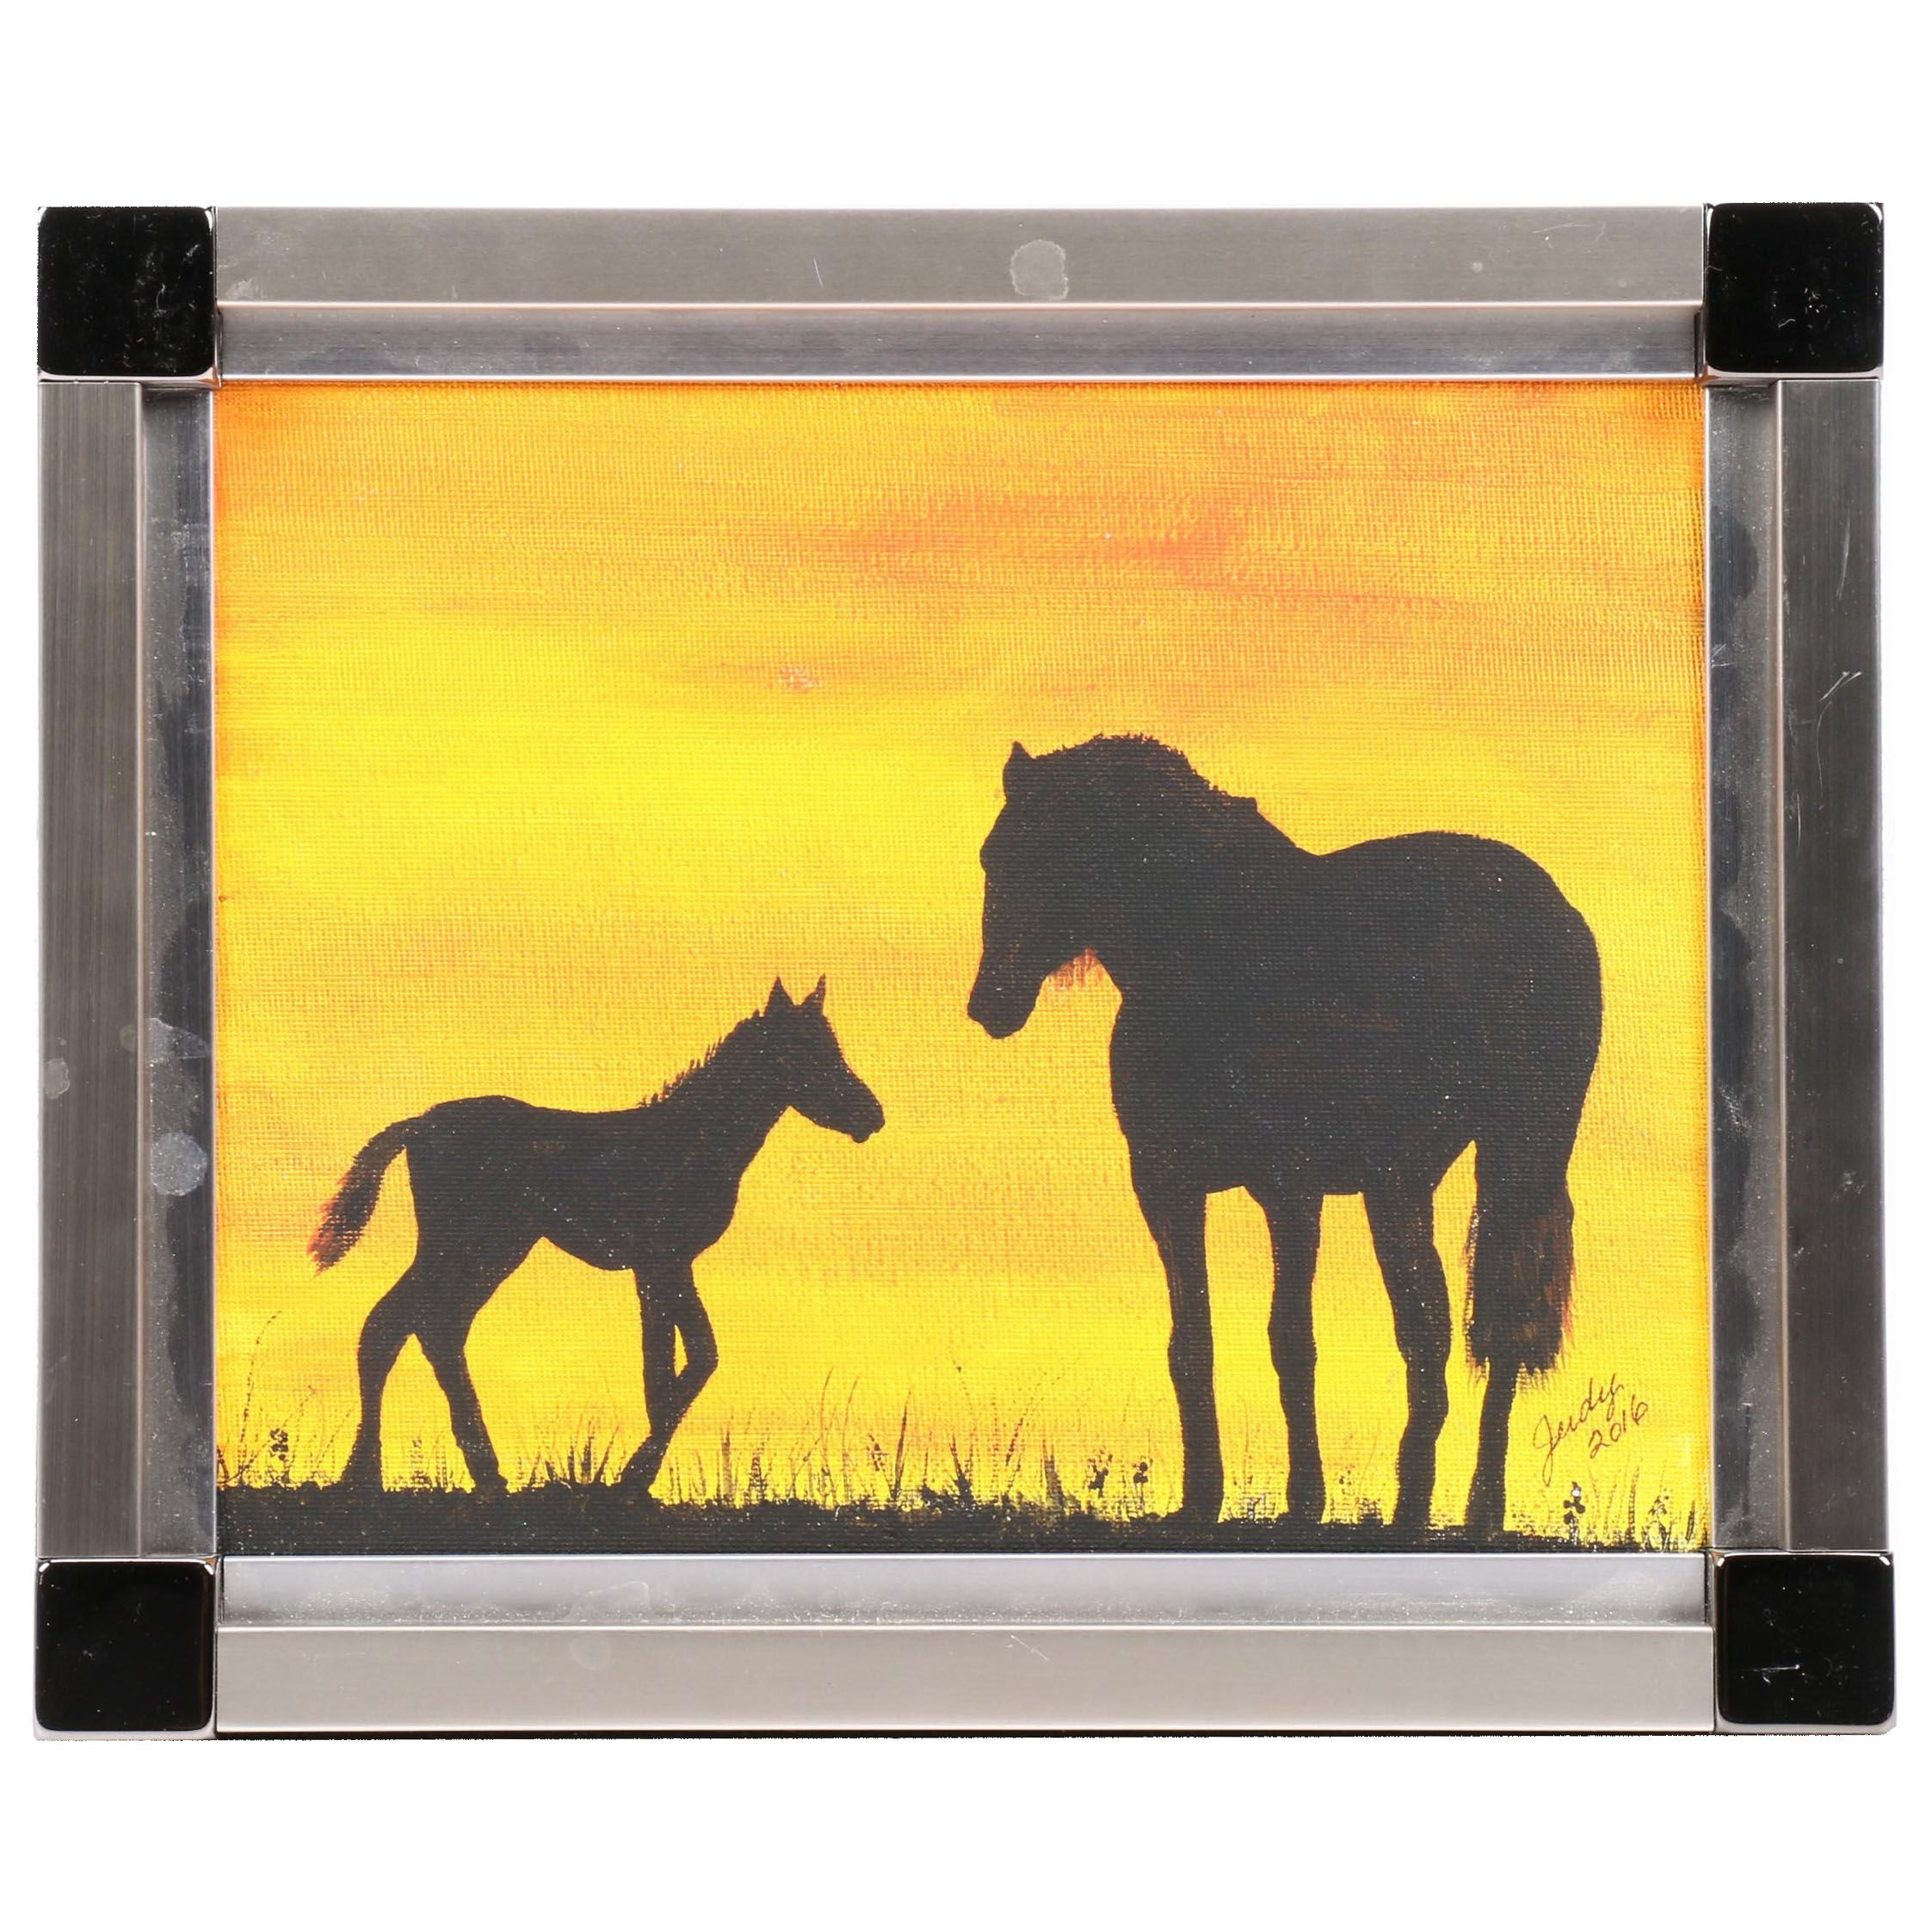 Acrylic Painting of Horse and Foal Sillouhetted at Sunset